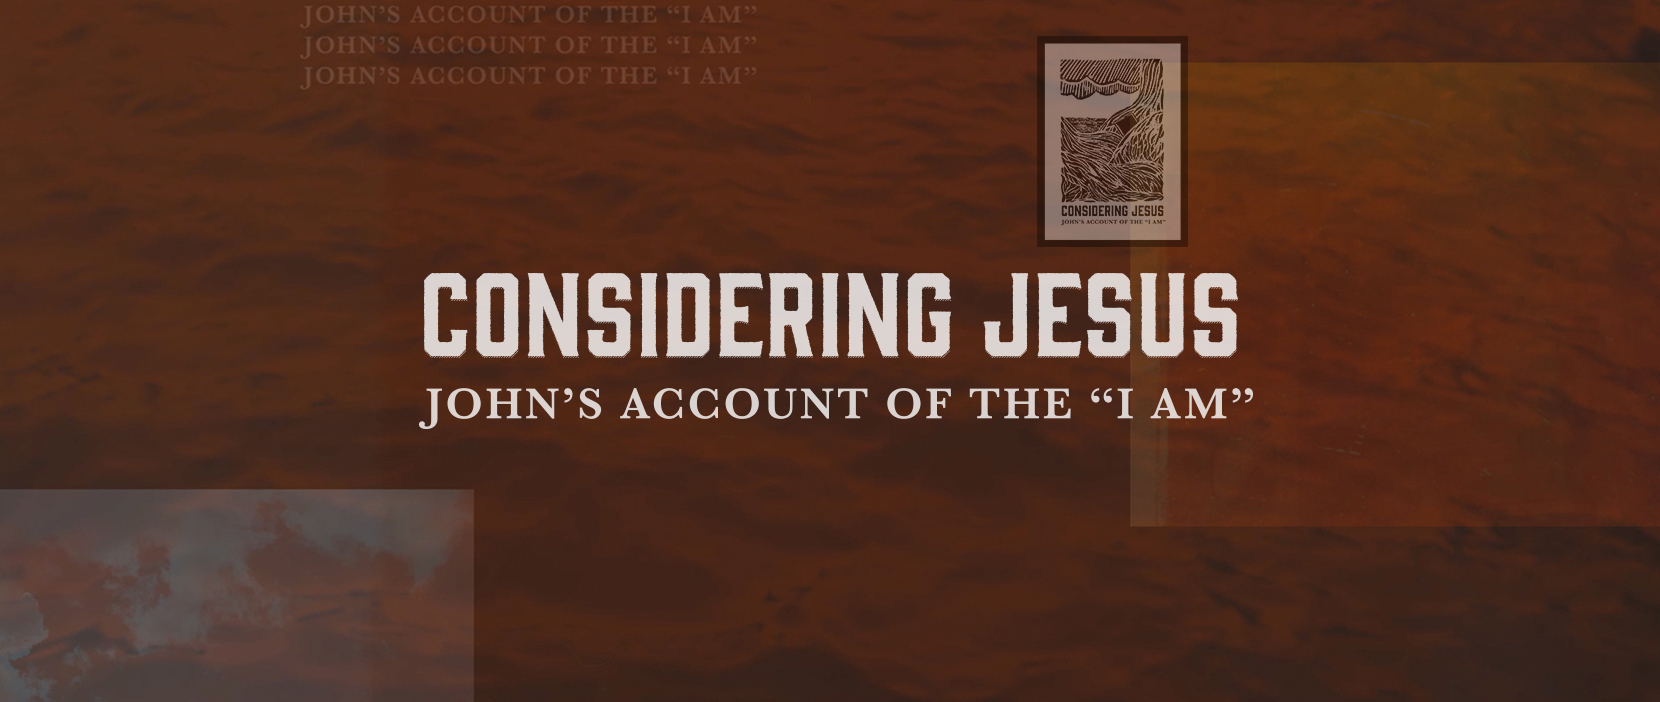 Main image for Considering Jesus